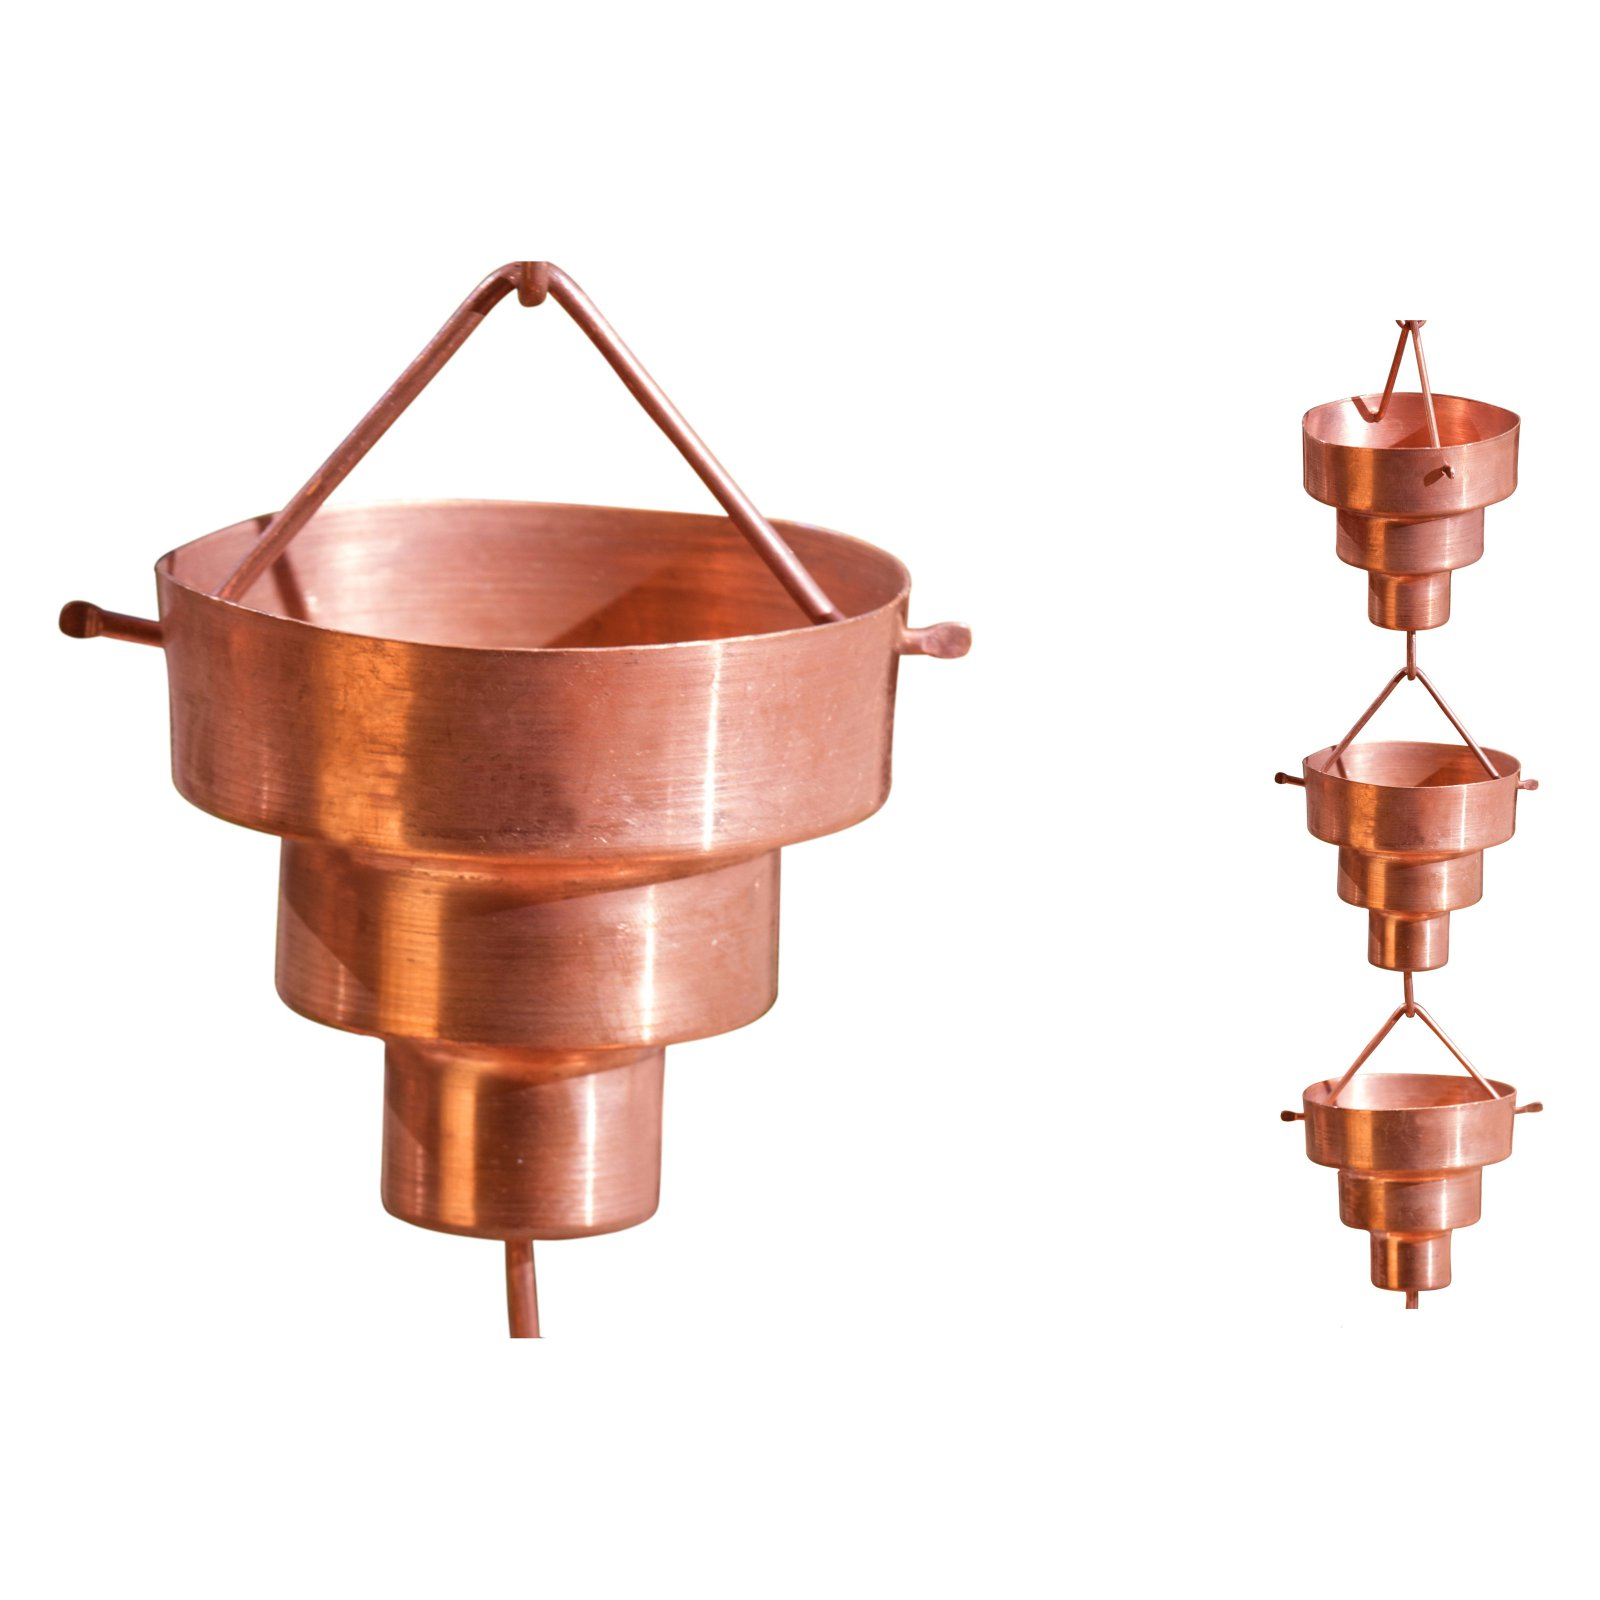 Monarch Pure Copper Bamboo Rain Chain, 8-1/2 Feet Length